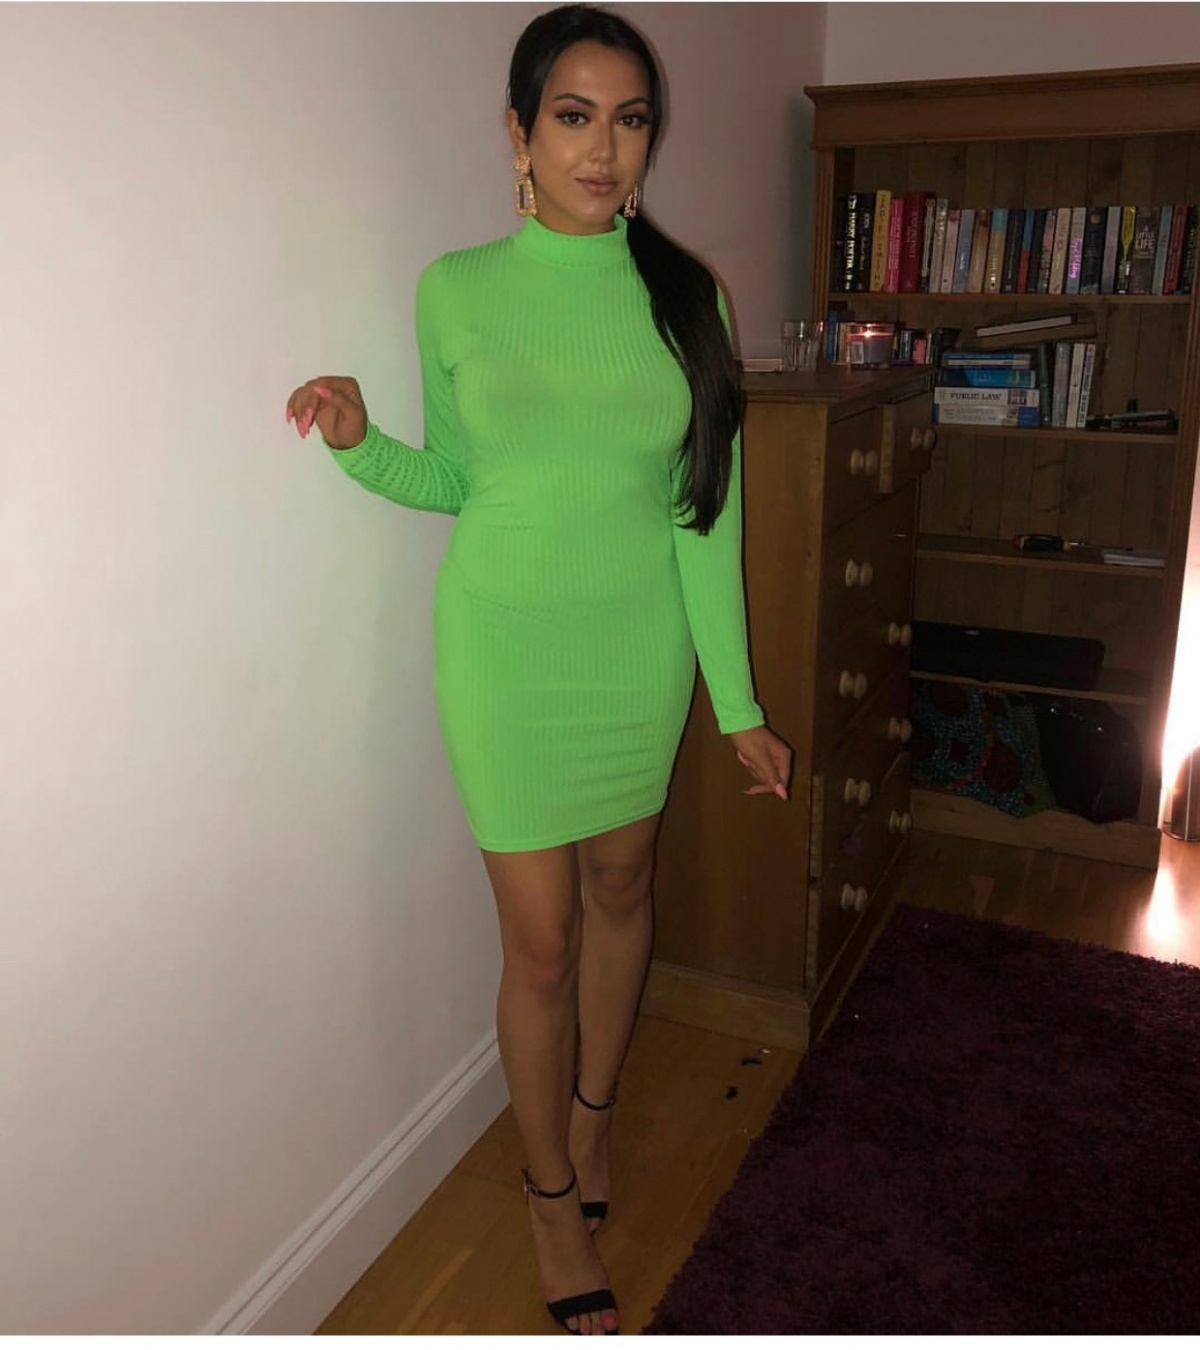 Image of a girl wearing a neon green dressing.